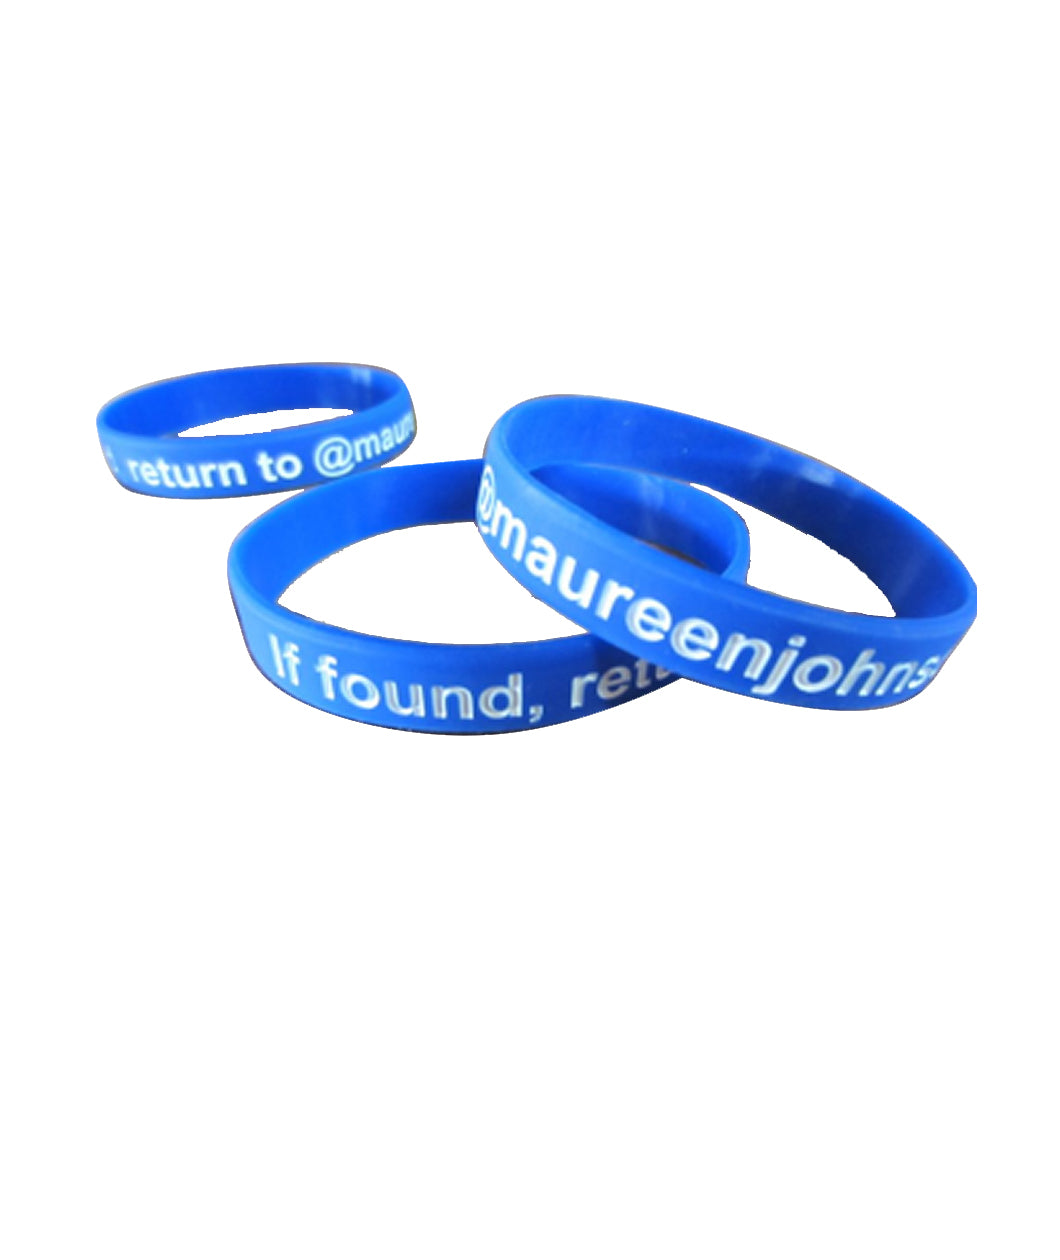 Return to Maureen Johnson Wristband